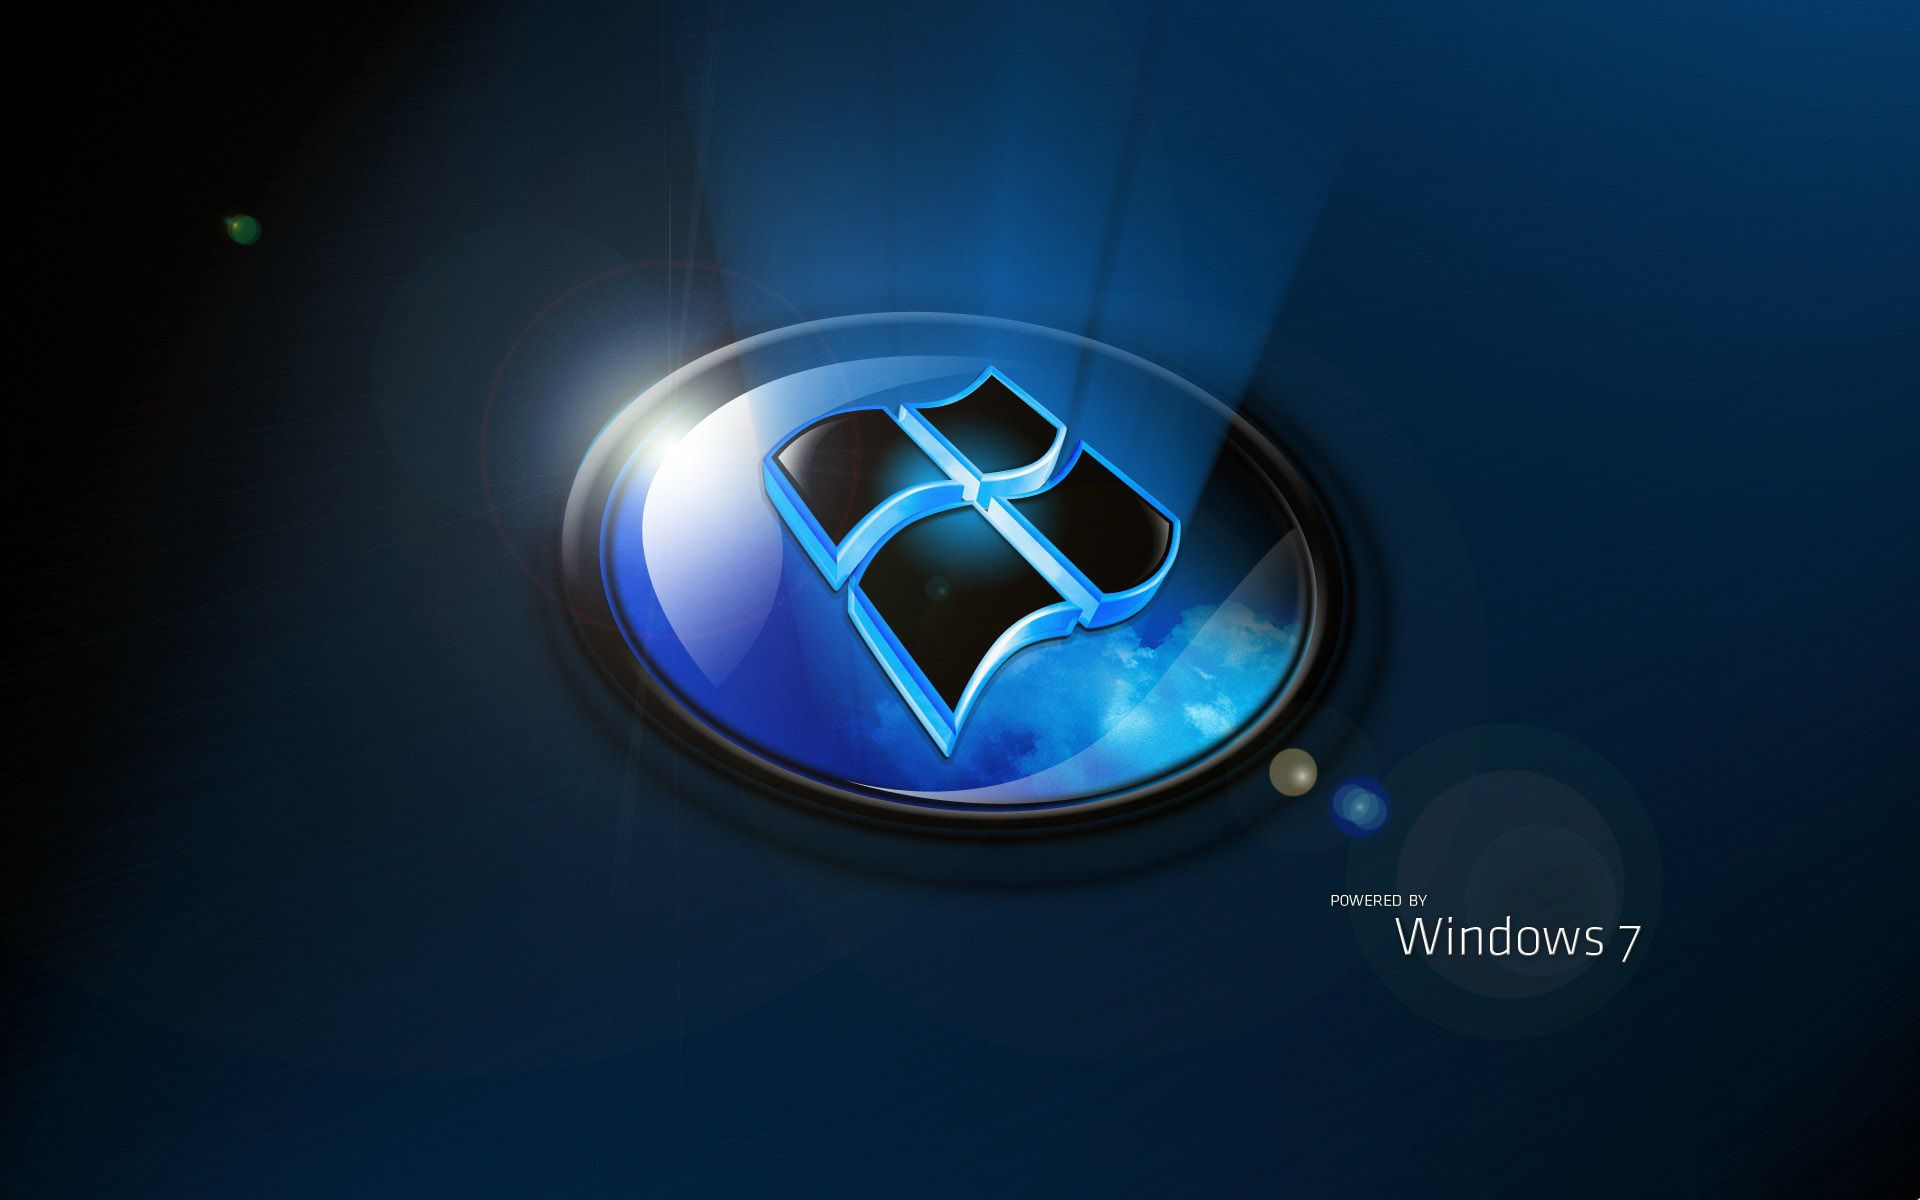 desktop wallpaper hd 3d windows 7 | hd wallpapers desktop